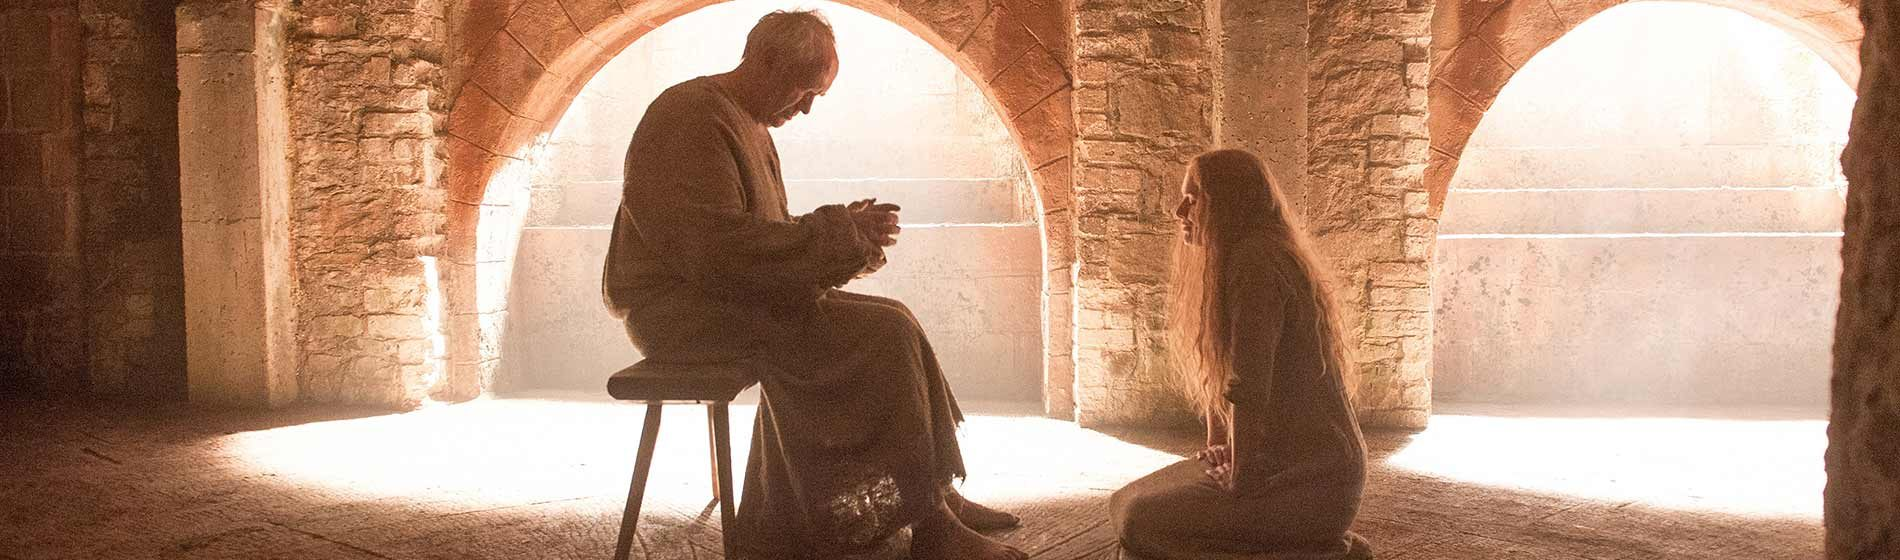 Game of Thrones - Season 5 Episode 10 - Featured